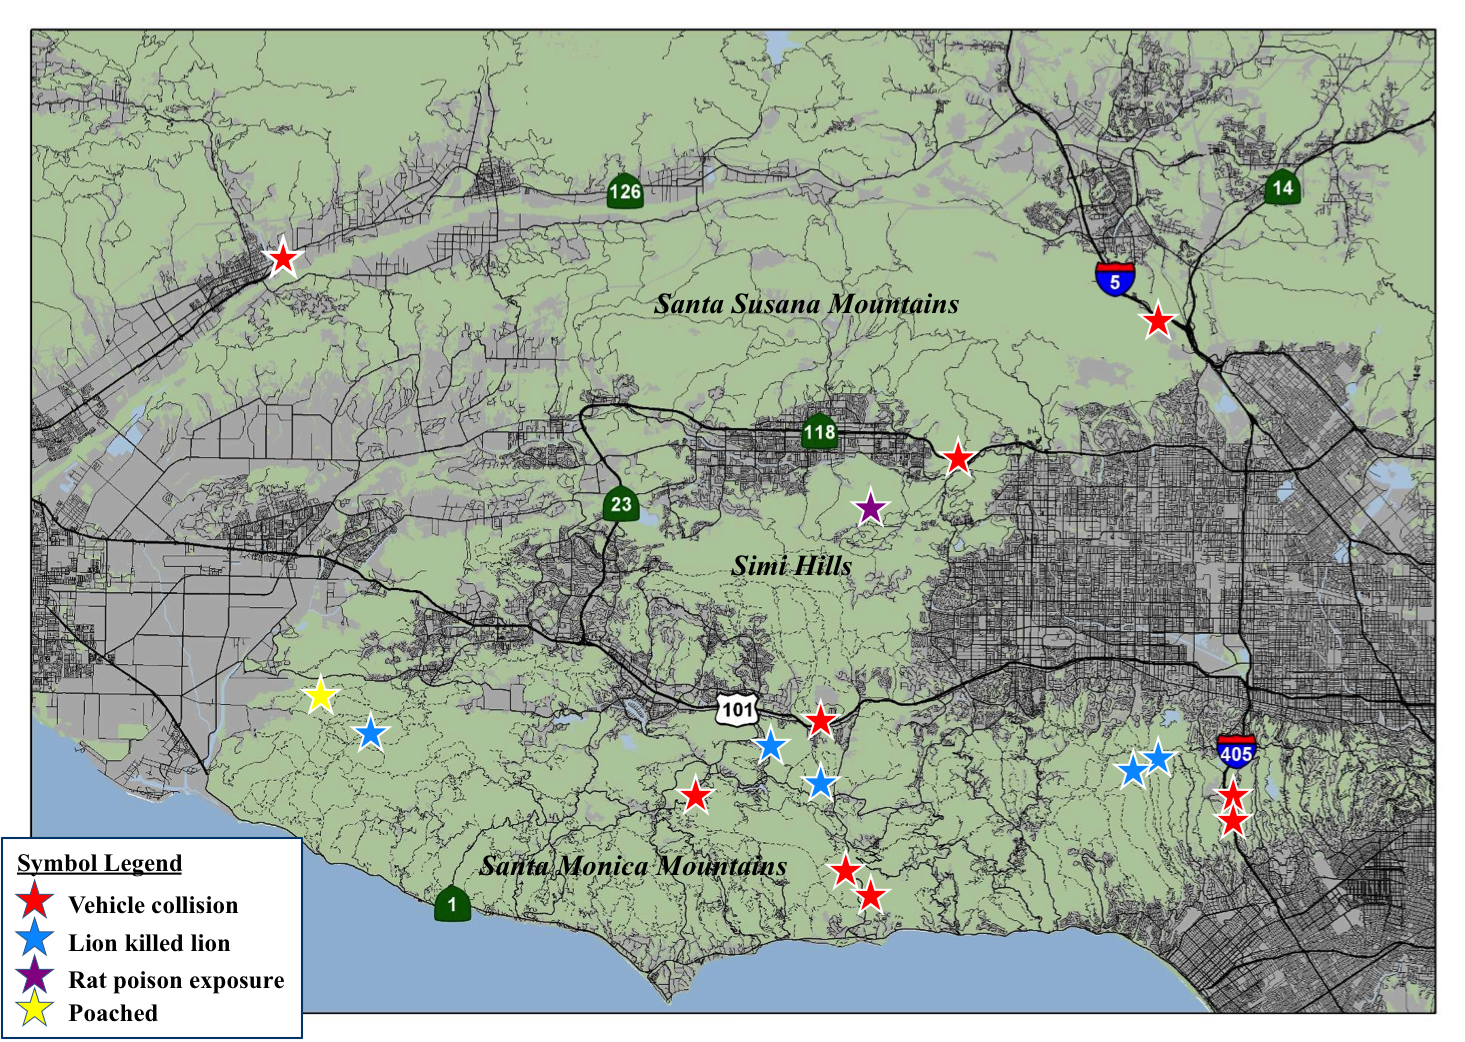 A map of locations for some of the mortalities for mountain lions in the Santa Monica Mountains.